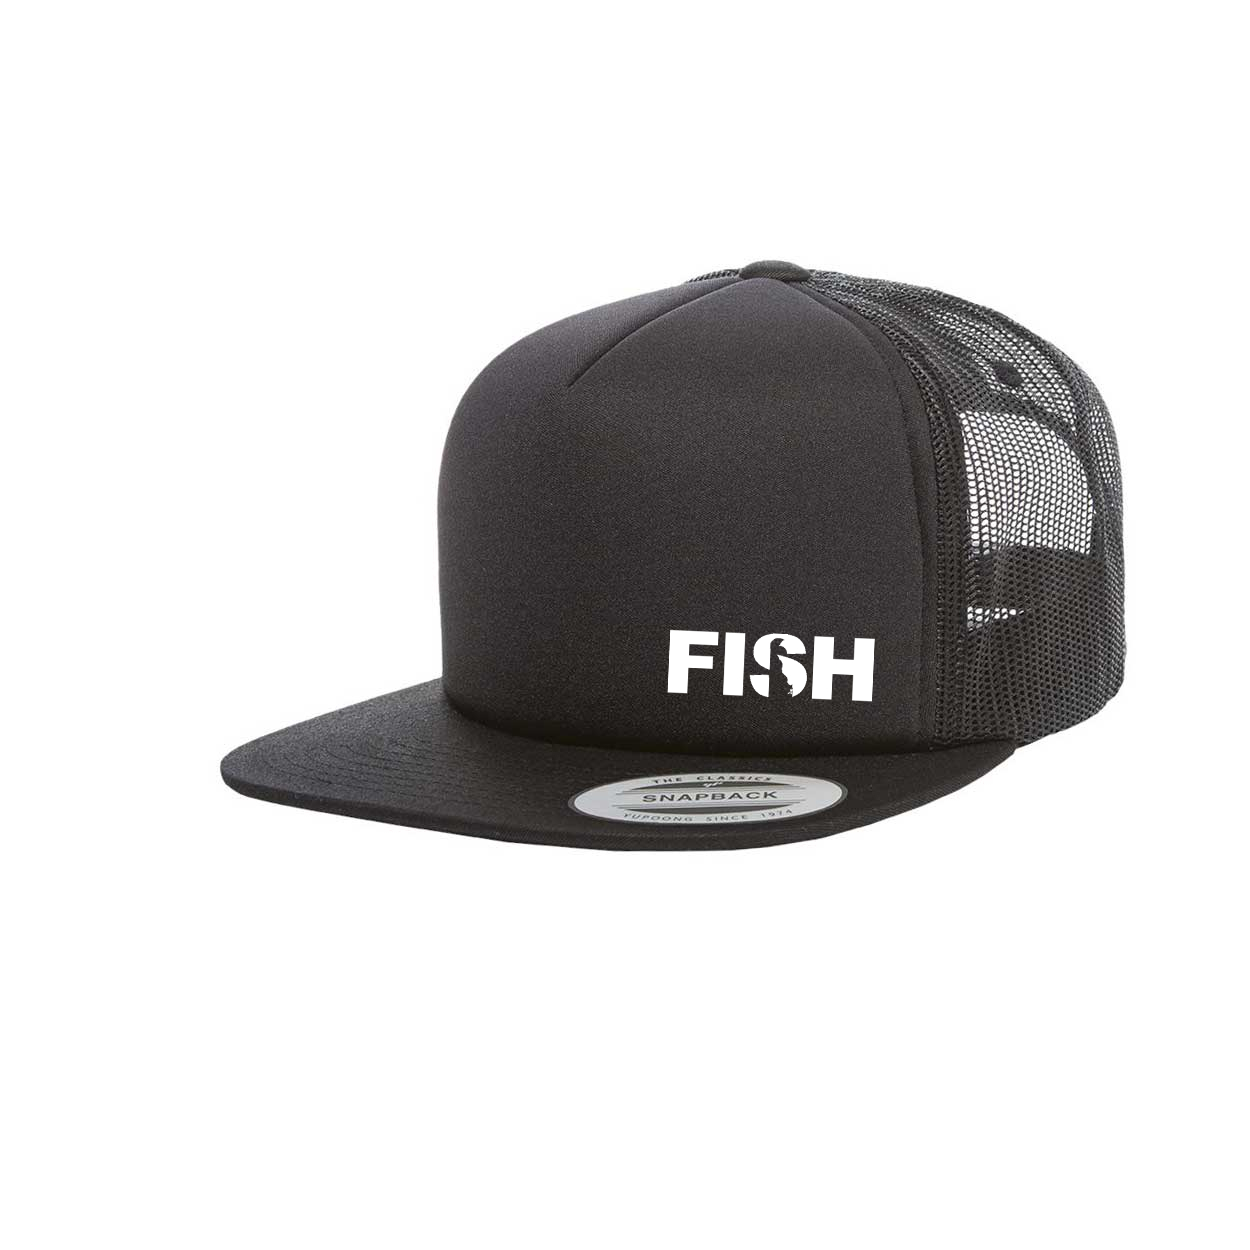 Fish Delaware Night Out Premium Foam Flat Brim Snapback Hat Black (White Logo)